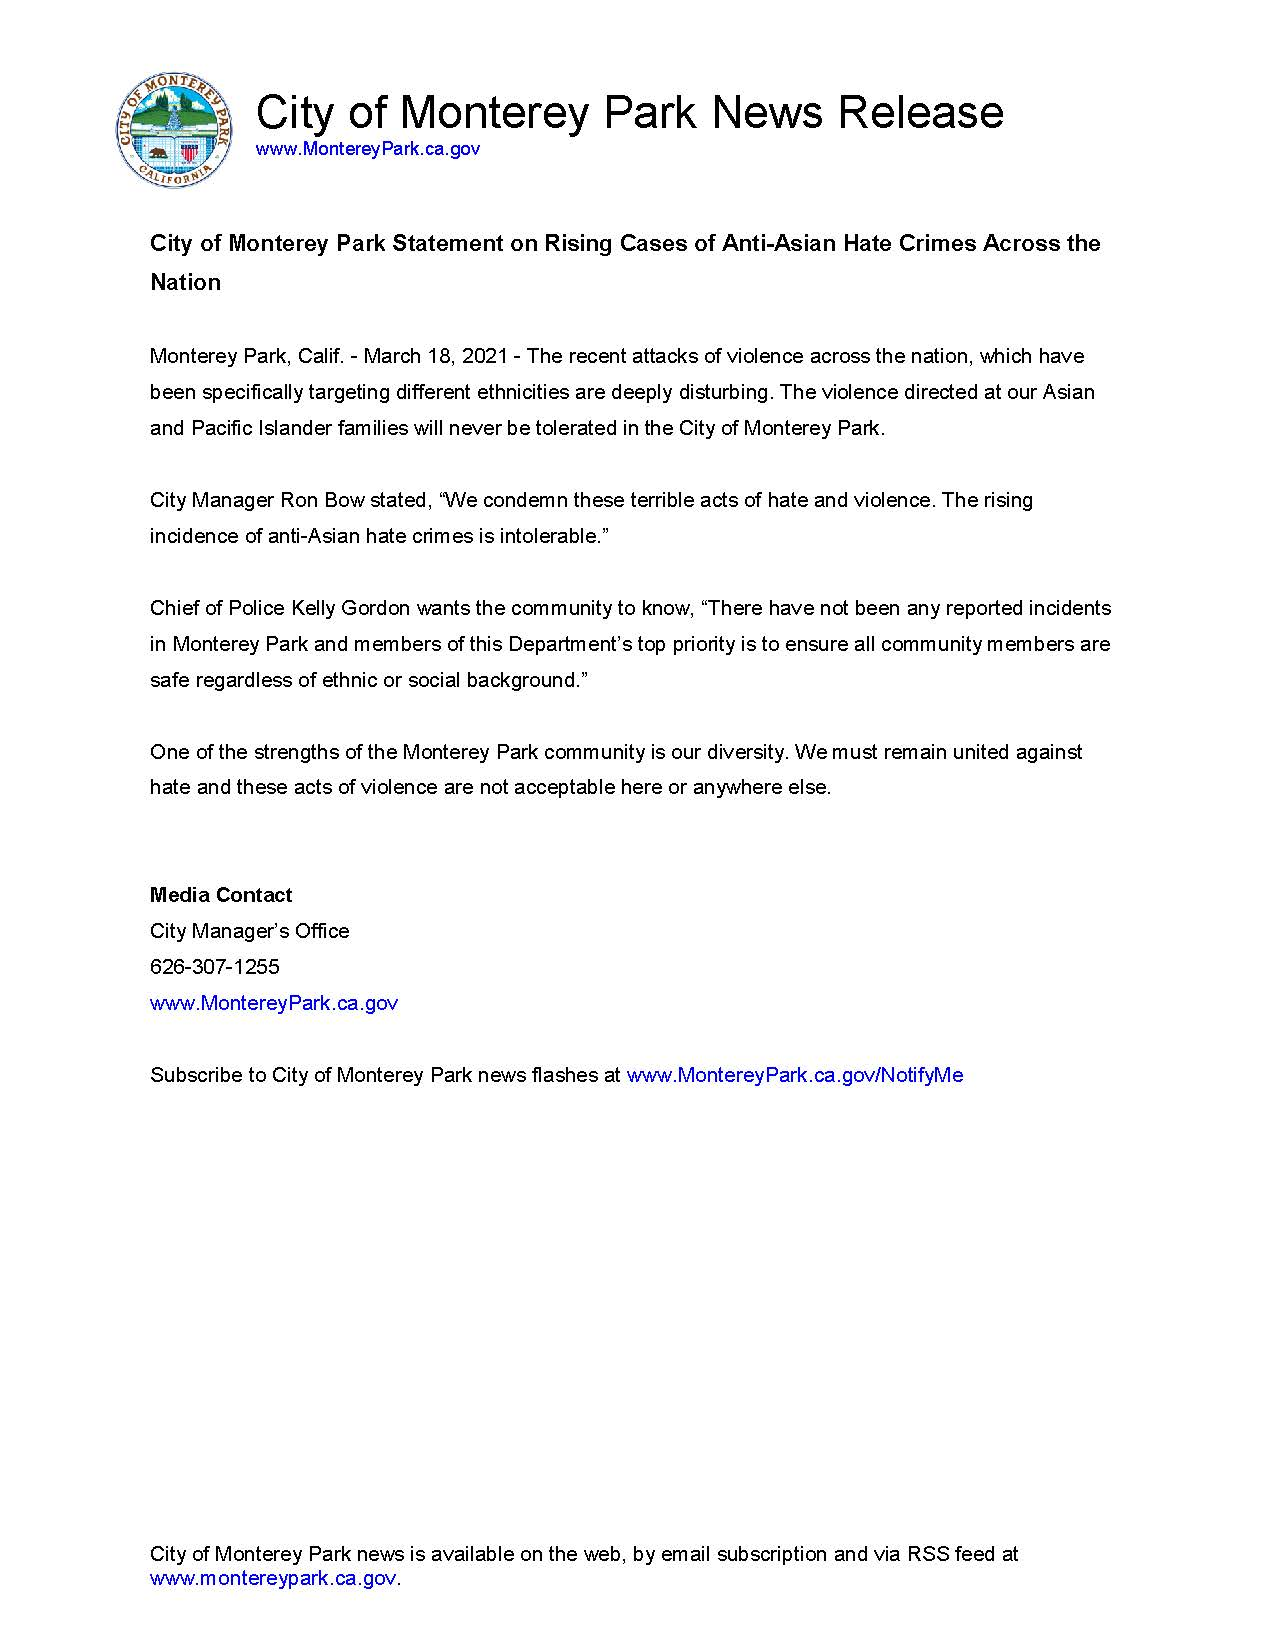 MPK News Release-Anti-Asian Hate Crime